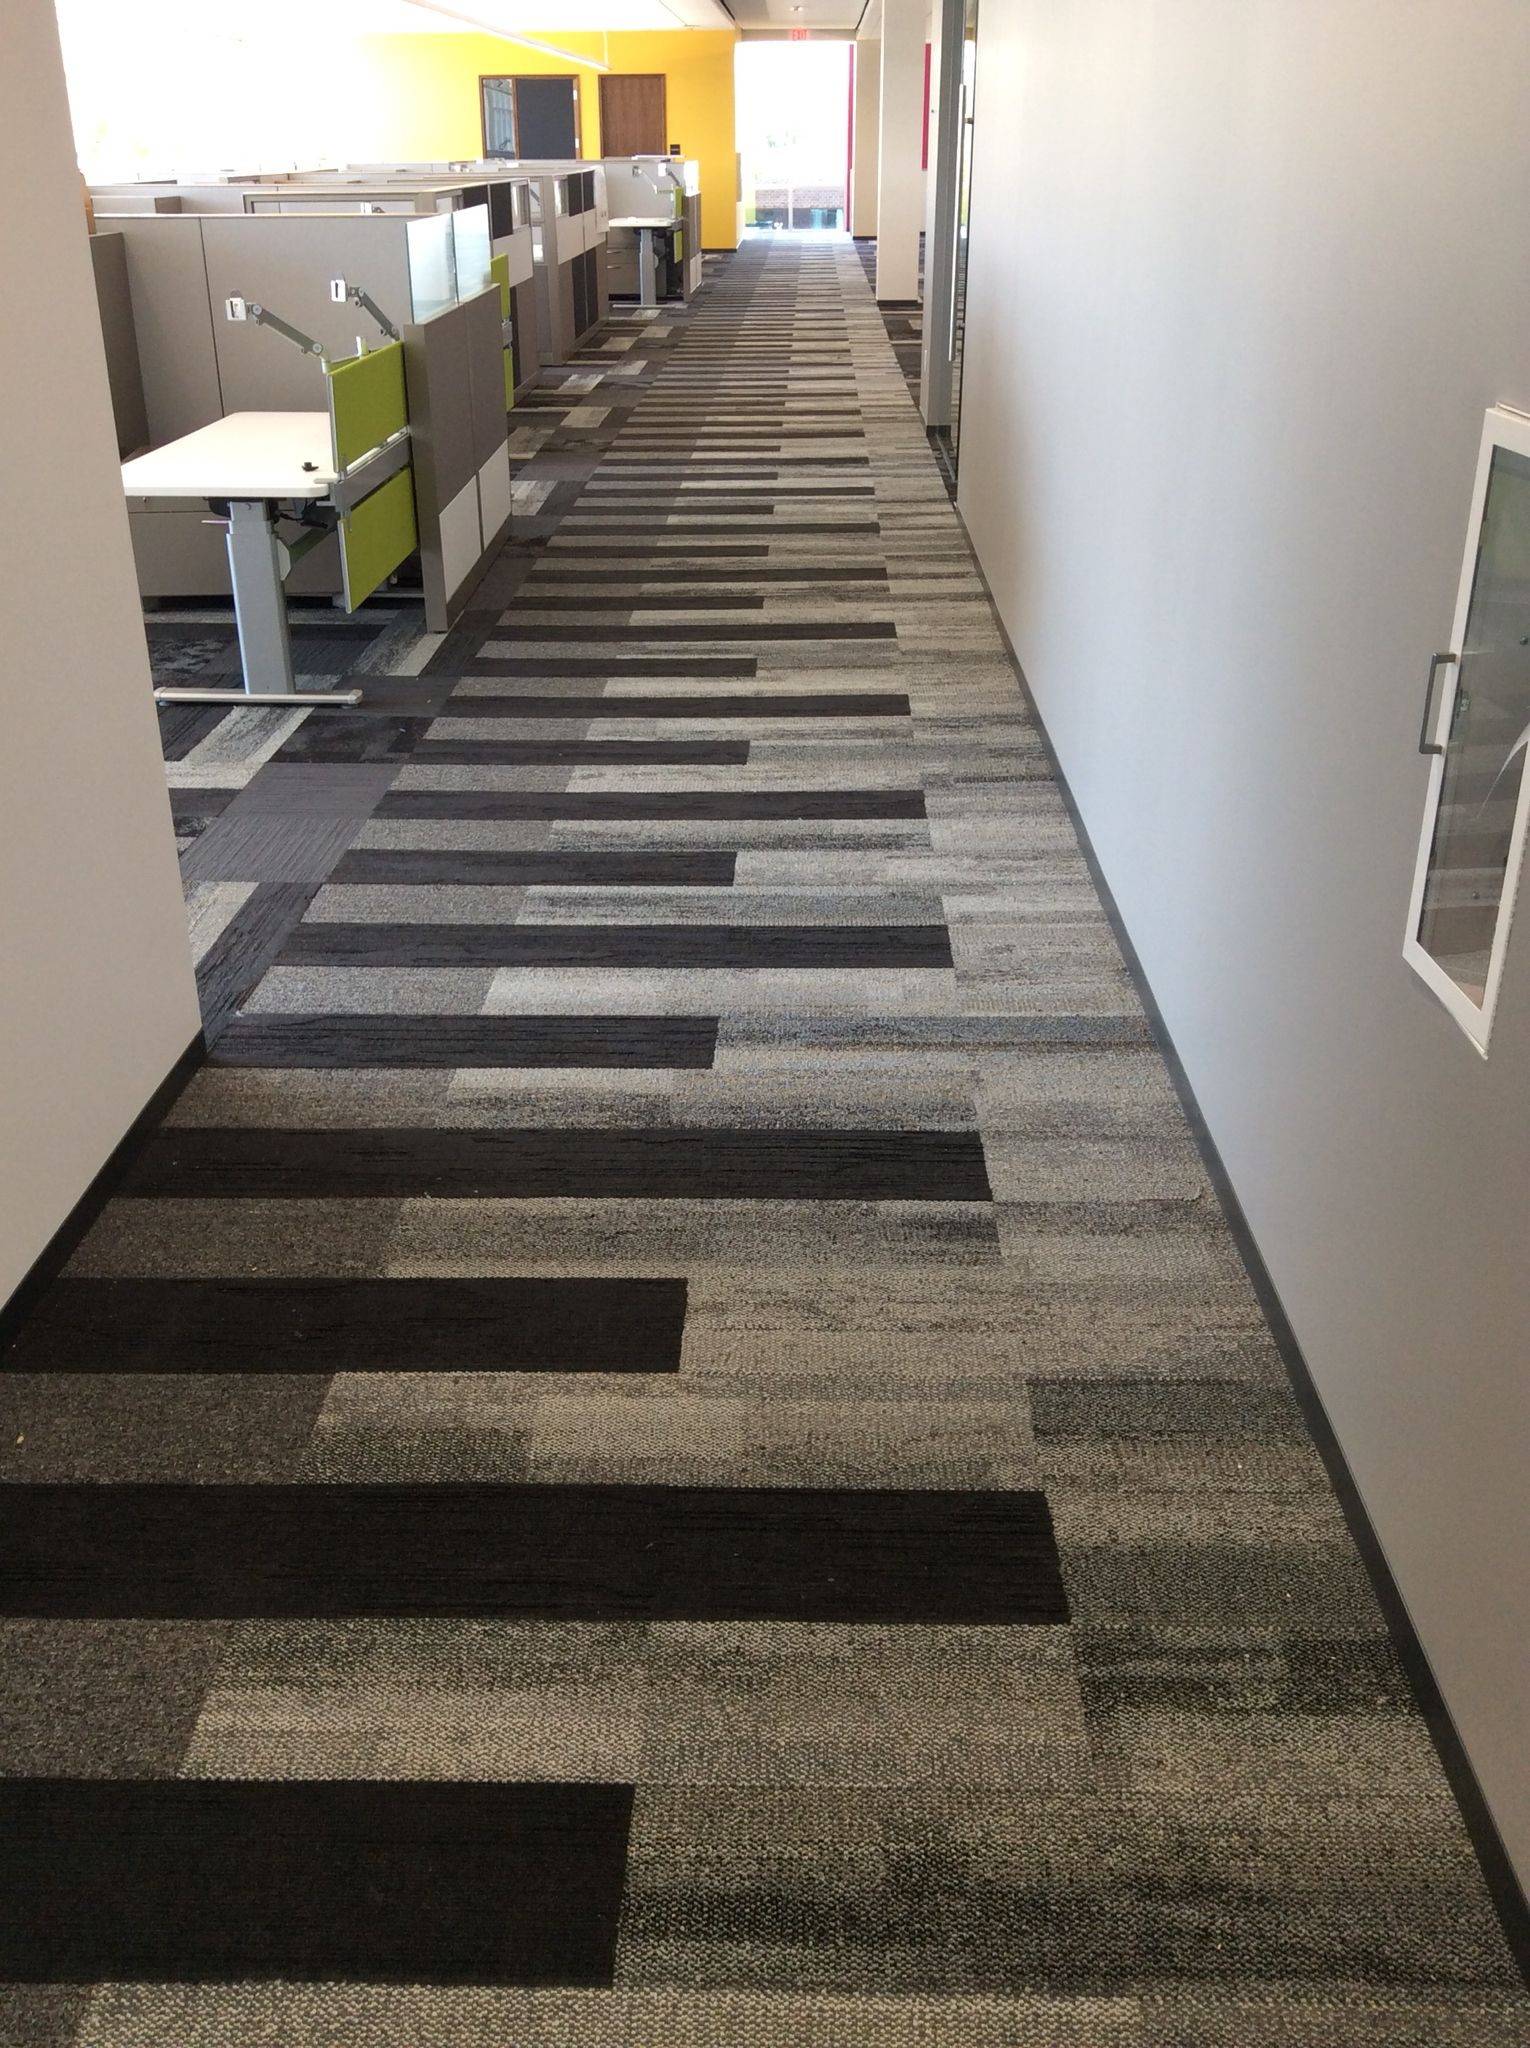 Interface Piano Key Install Carpet tiles office, Carpet